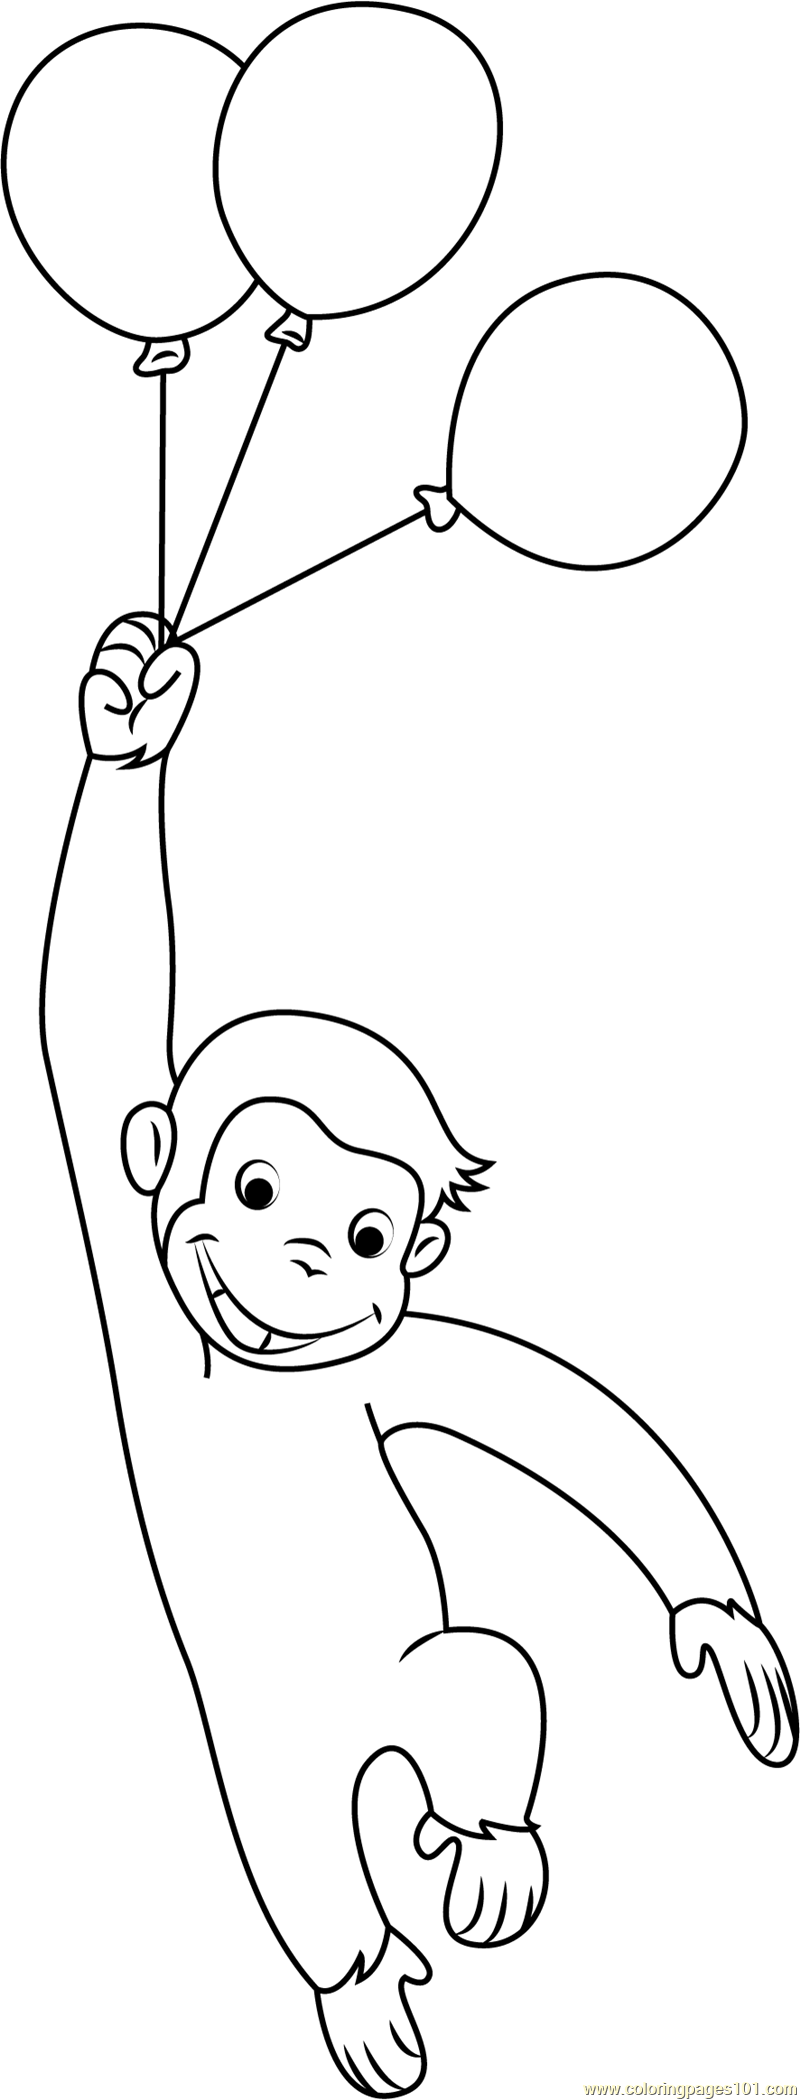 Curious George with Balloons Coloring Page - Free Curious George ...